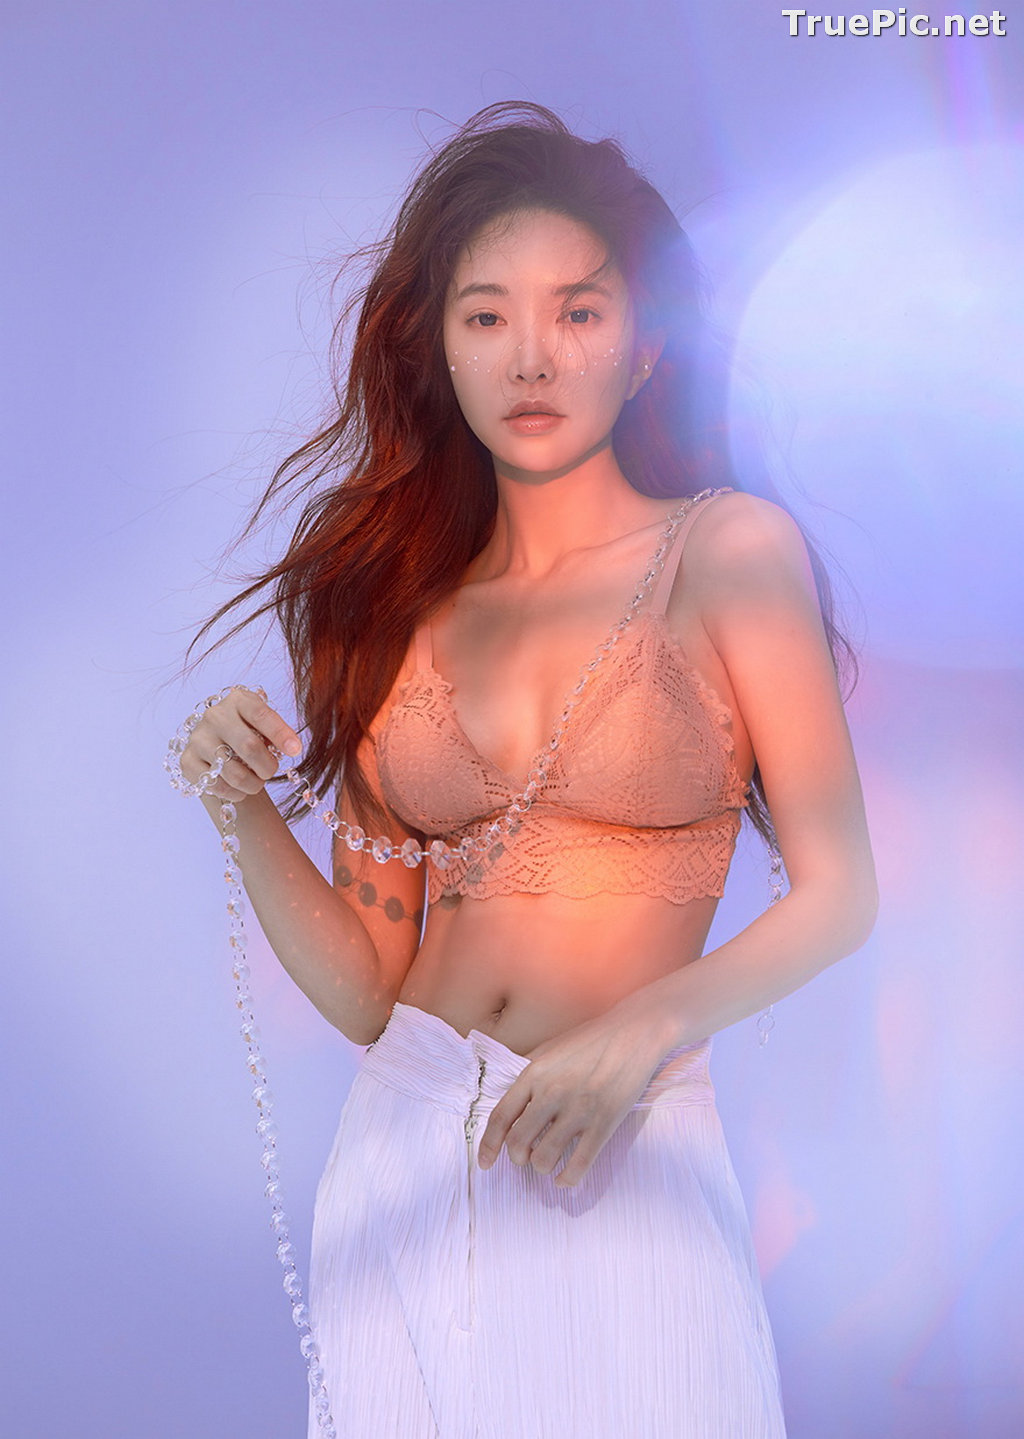 Image Korean Fashion Model - Park Soo Yeon - Salmon Pink Lingerie - TruePic.net - Picture-1